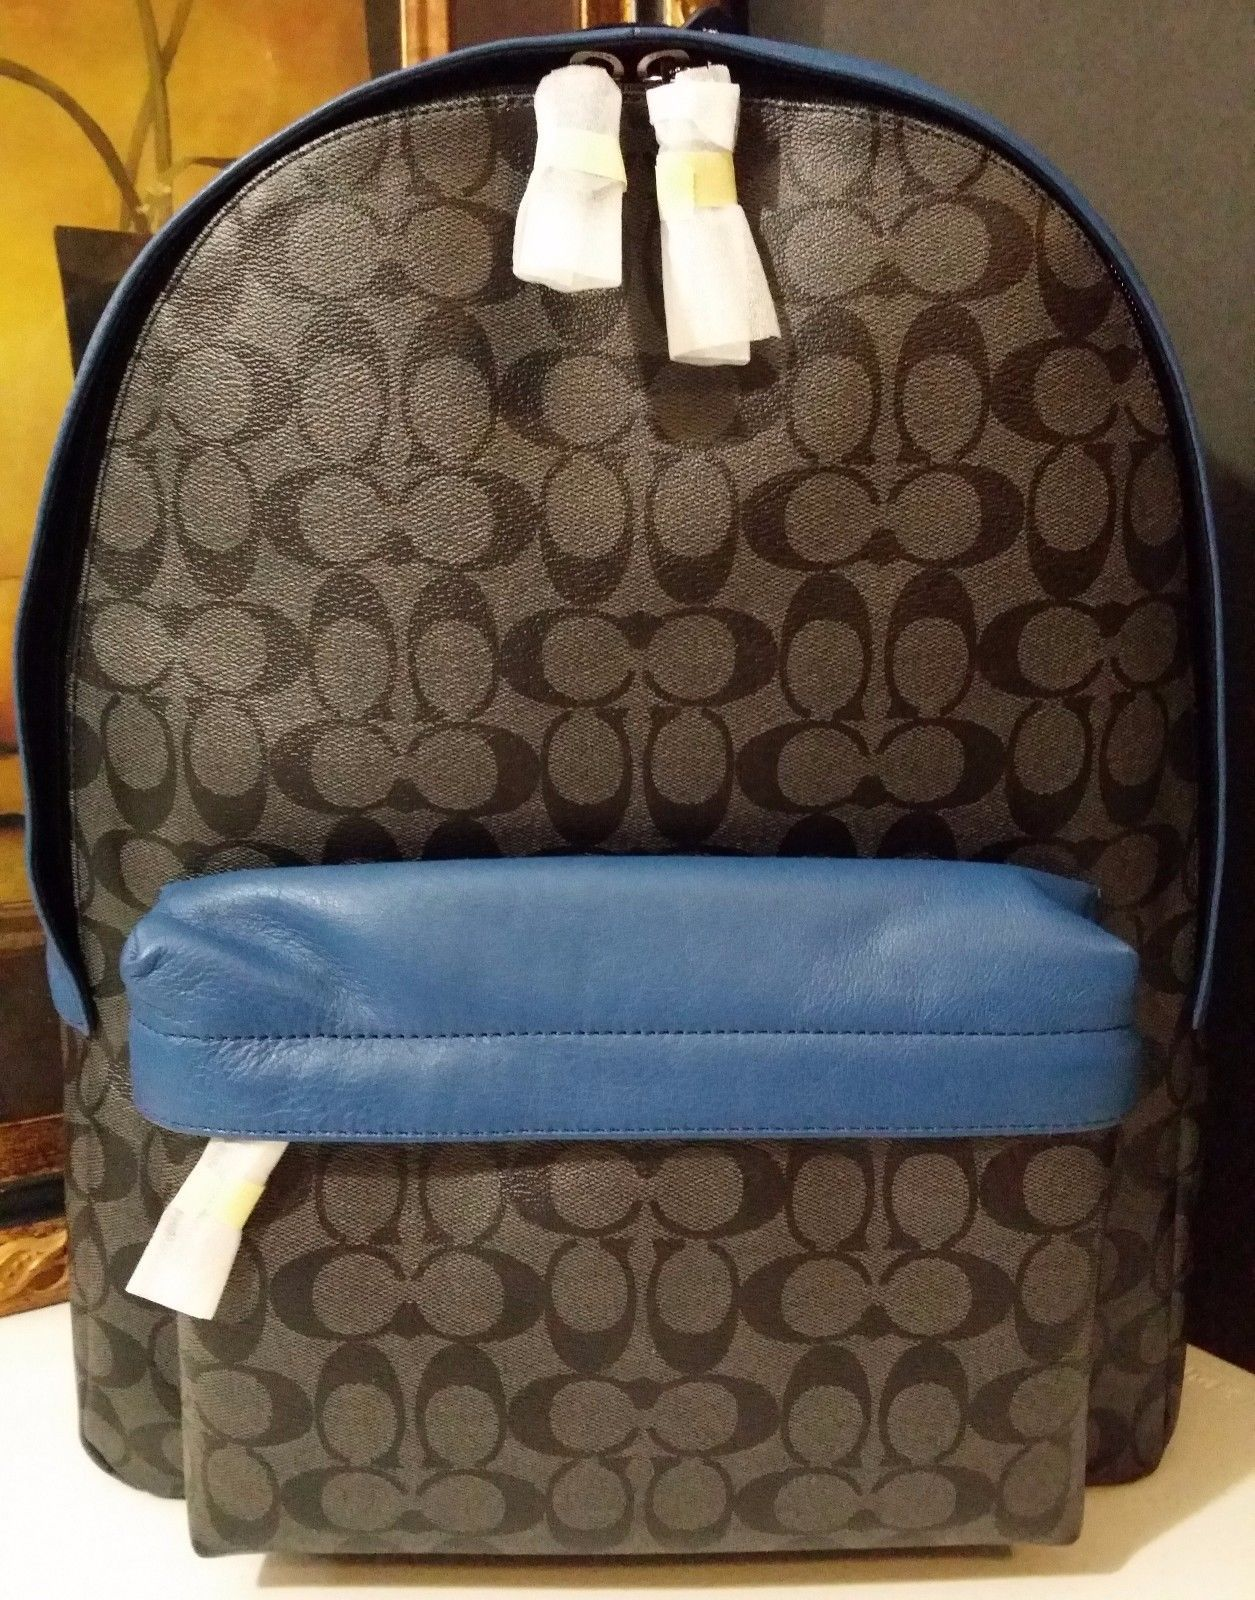 NWT COACH CAMPUS BACKPACK SIGNATURE PVC F71973 CHARCOAL/DENIM $495